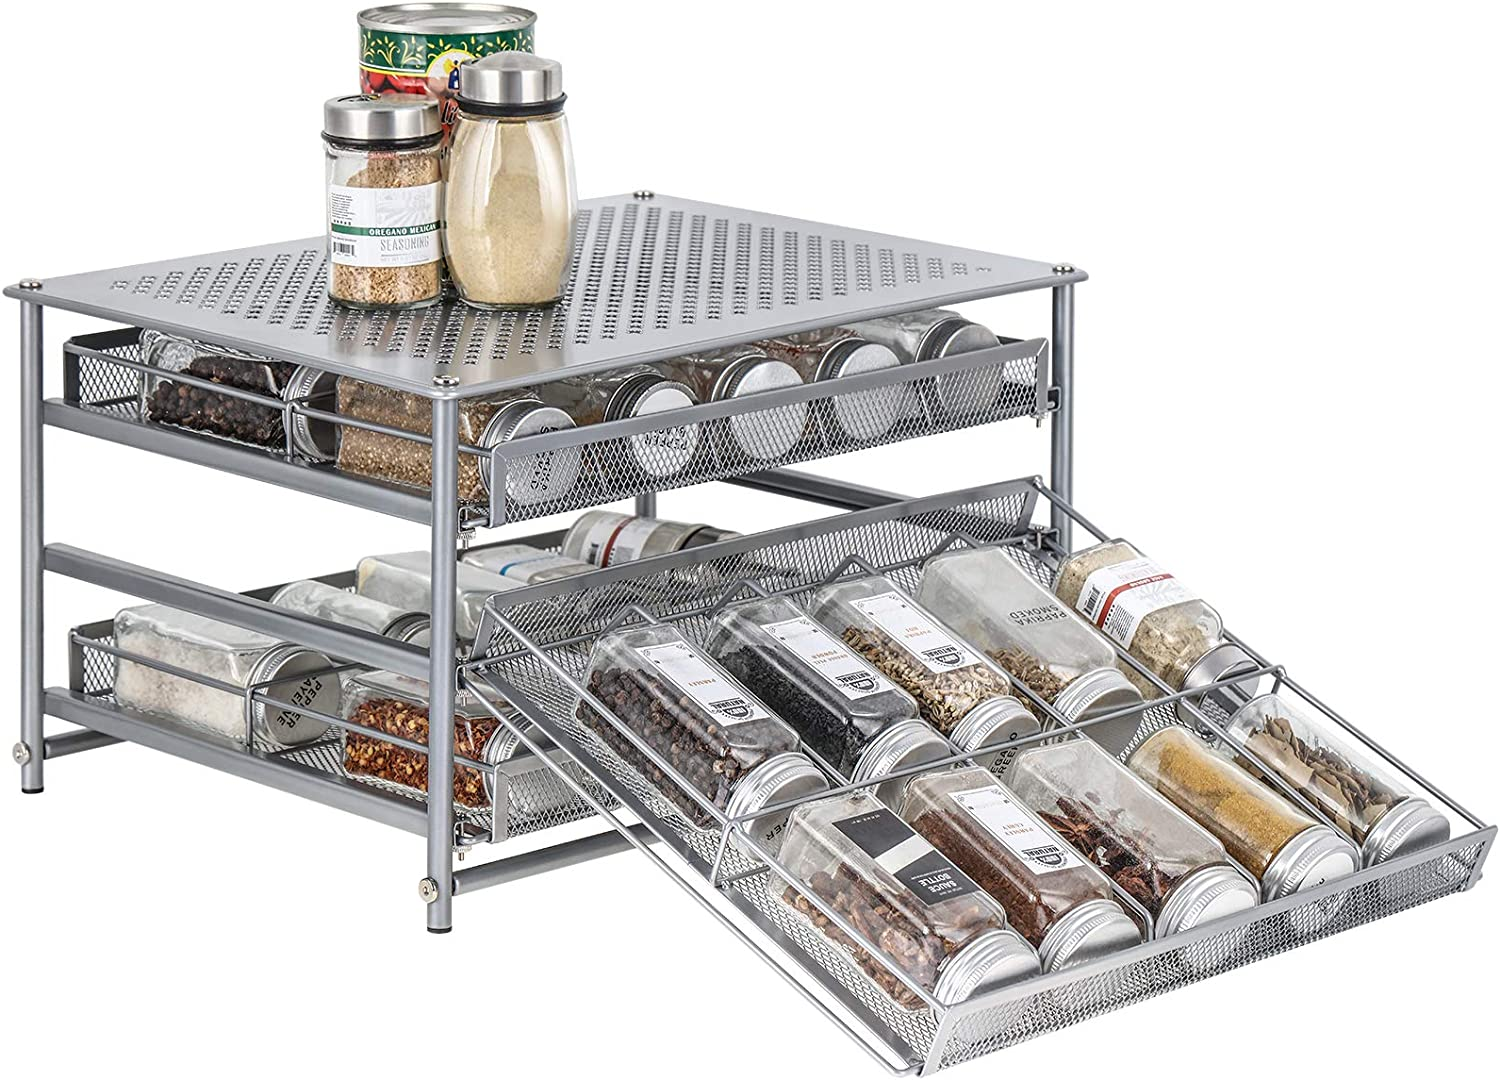 Spice Rack Organizer for Cabinet, 3 Tier 30-Bottle Spice Drawer Storage, Seasoning Shelves for Kitchen Pantry Countertop, Metal (Silver)